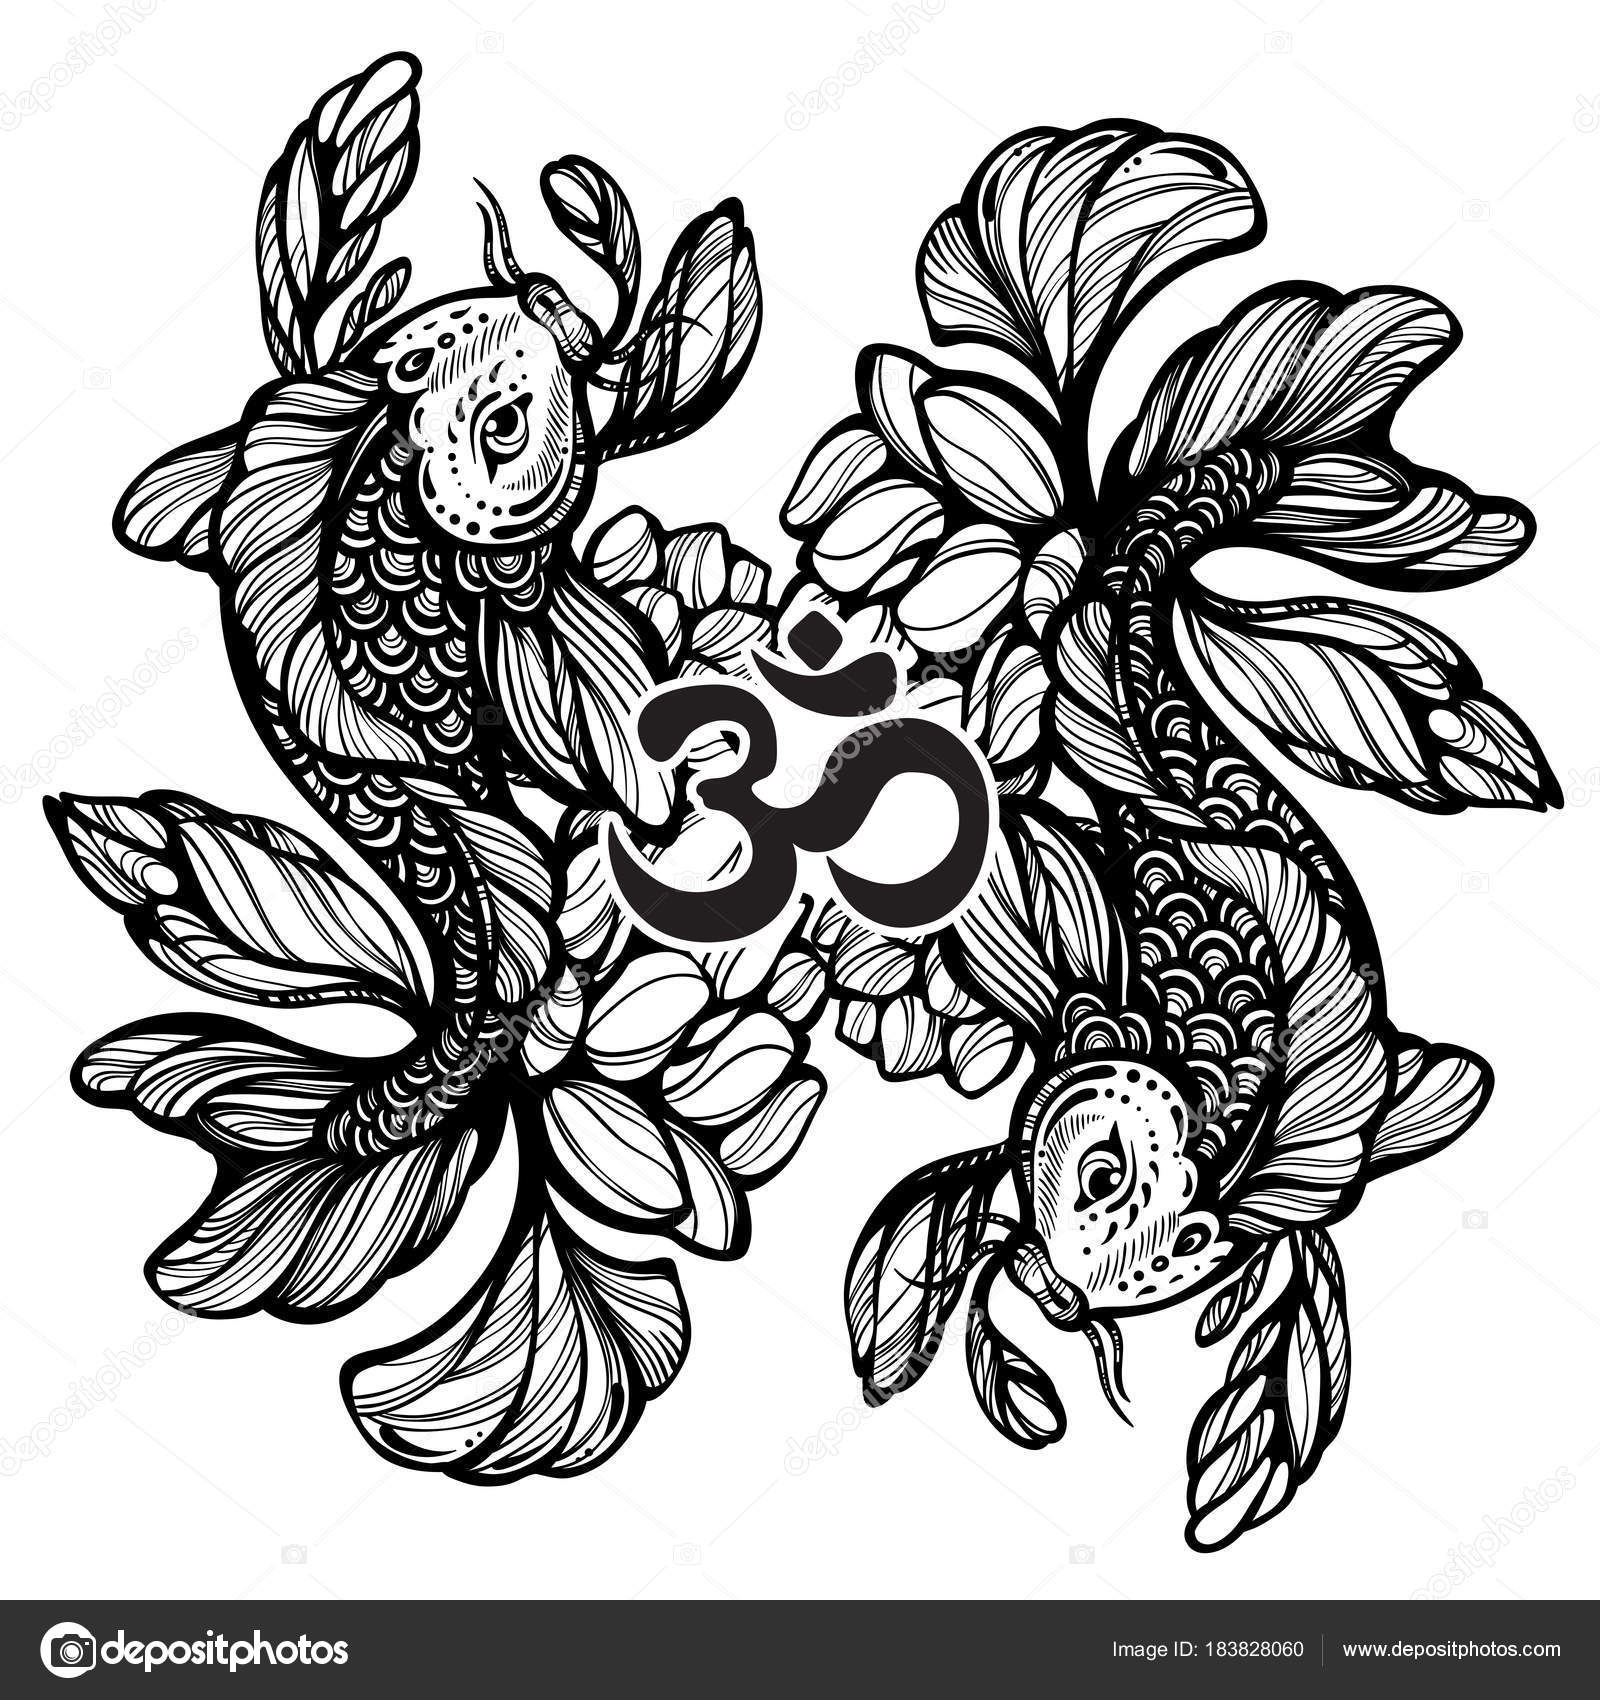 2092dba7af7f0 Beautiful hand-drawn oriental illustration of Koi carp fish with Lotus  flower around. High-detailed graphic linework symbol of wisdom.